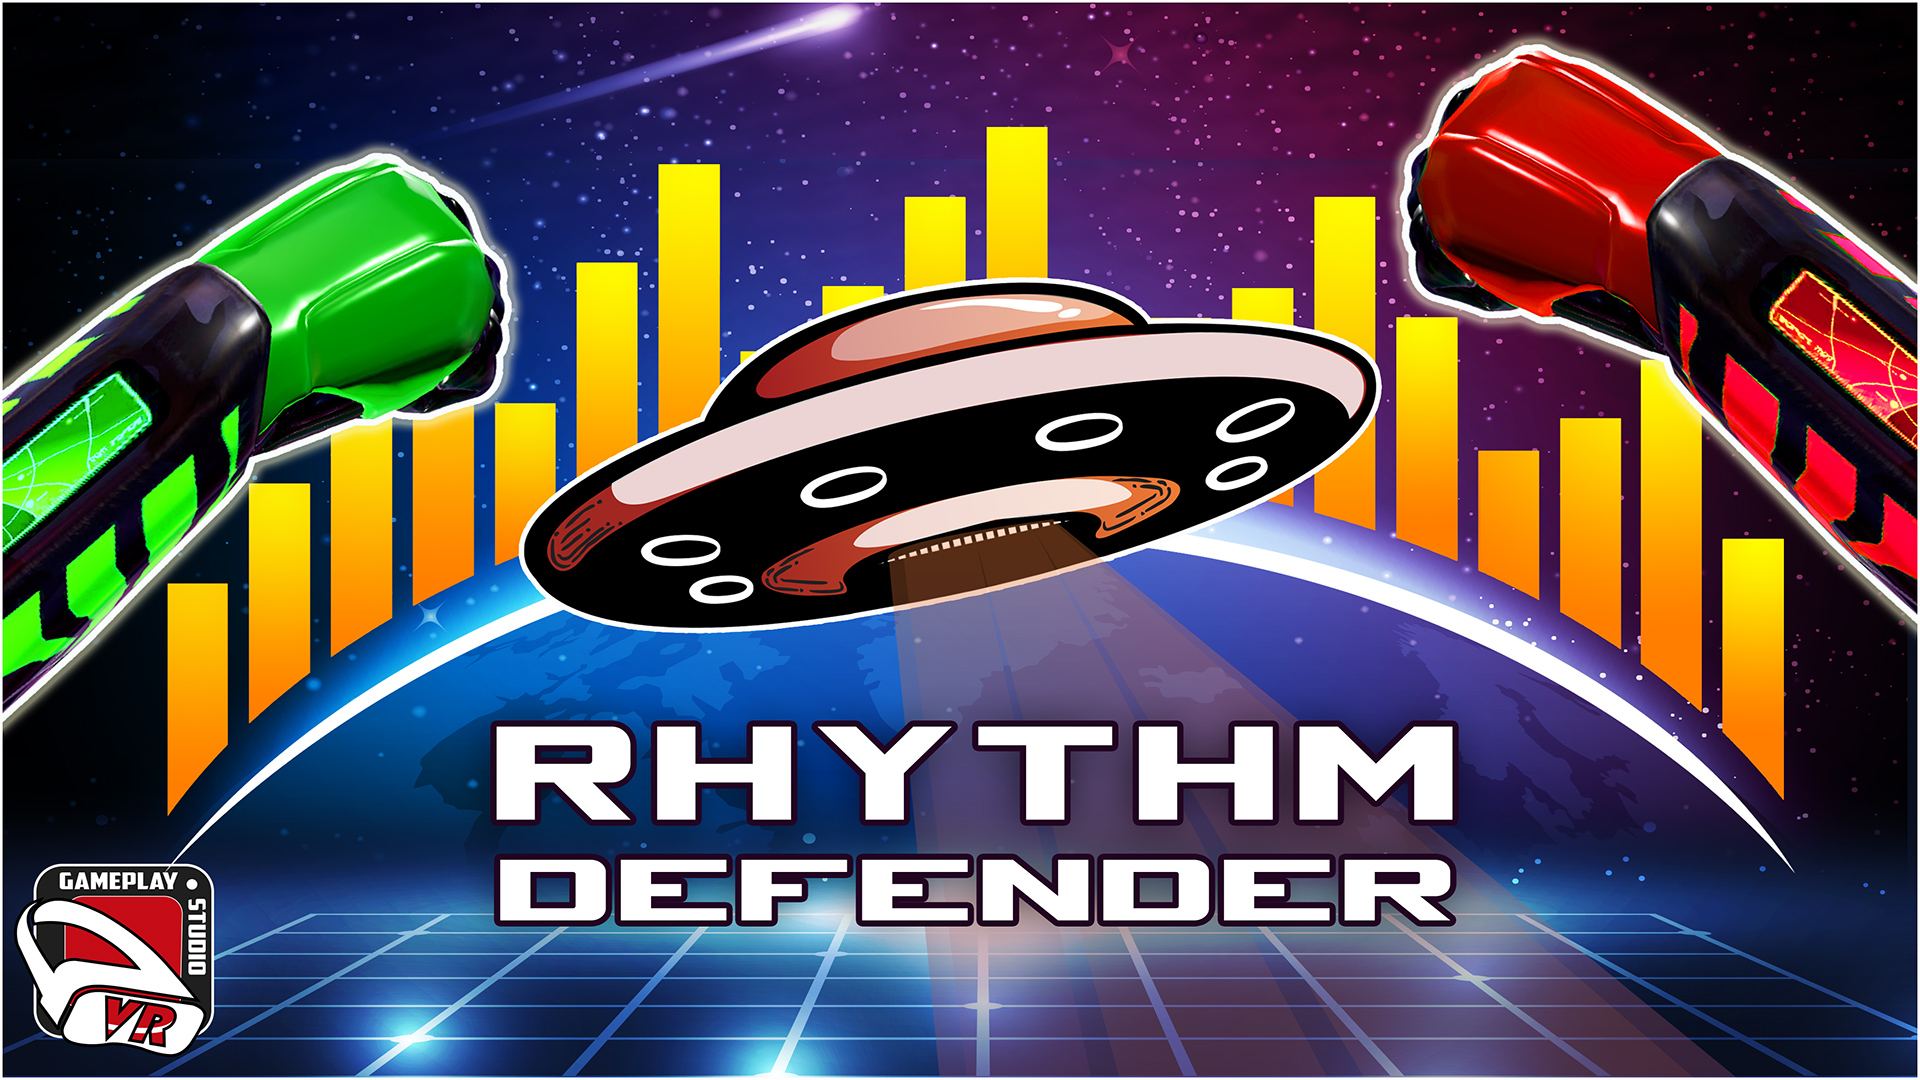 Rhythm Defender Mixed Reality Trailer